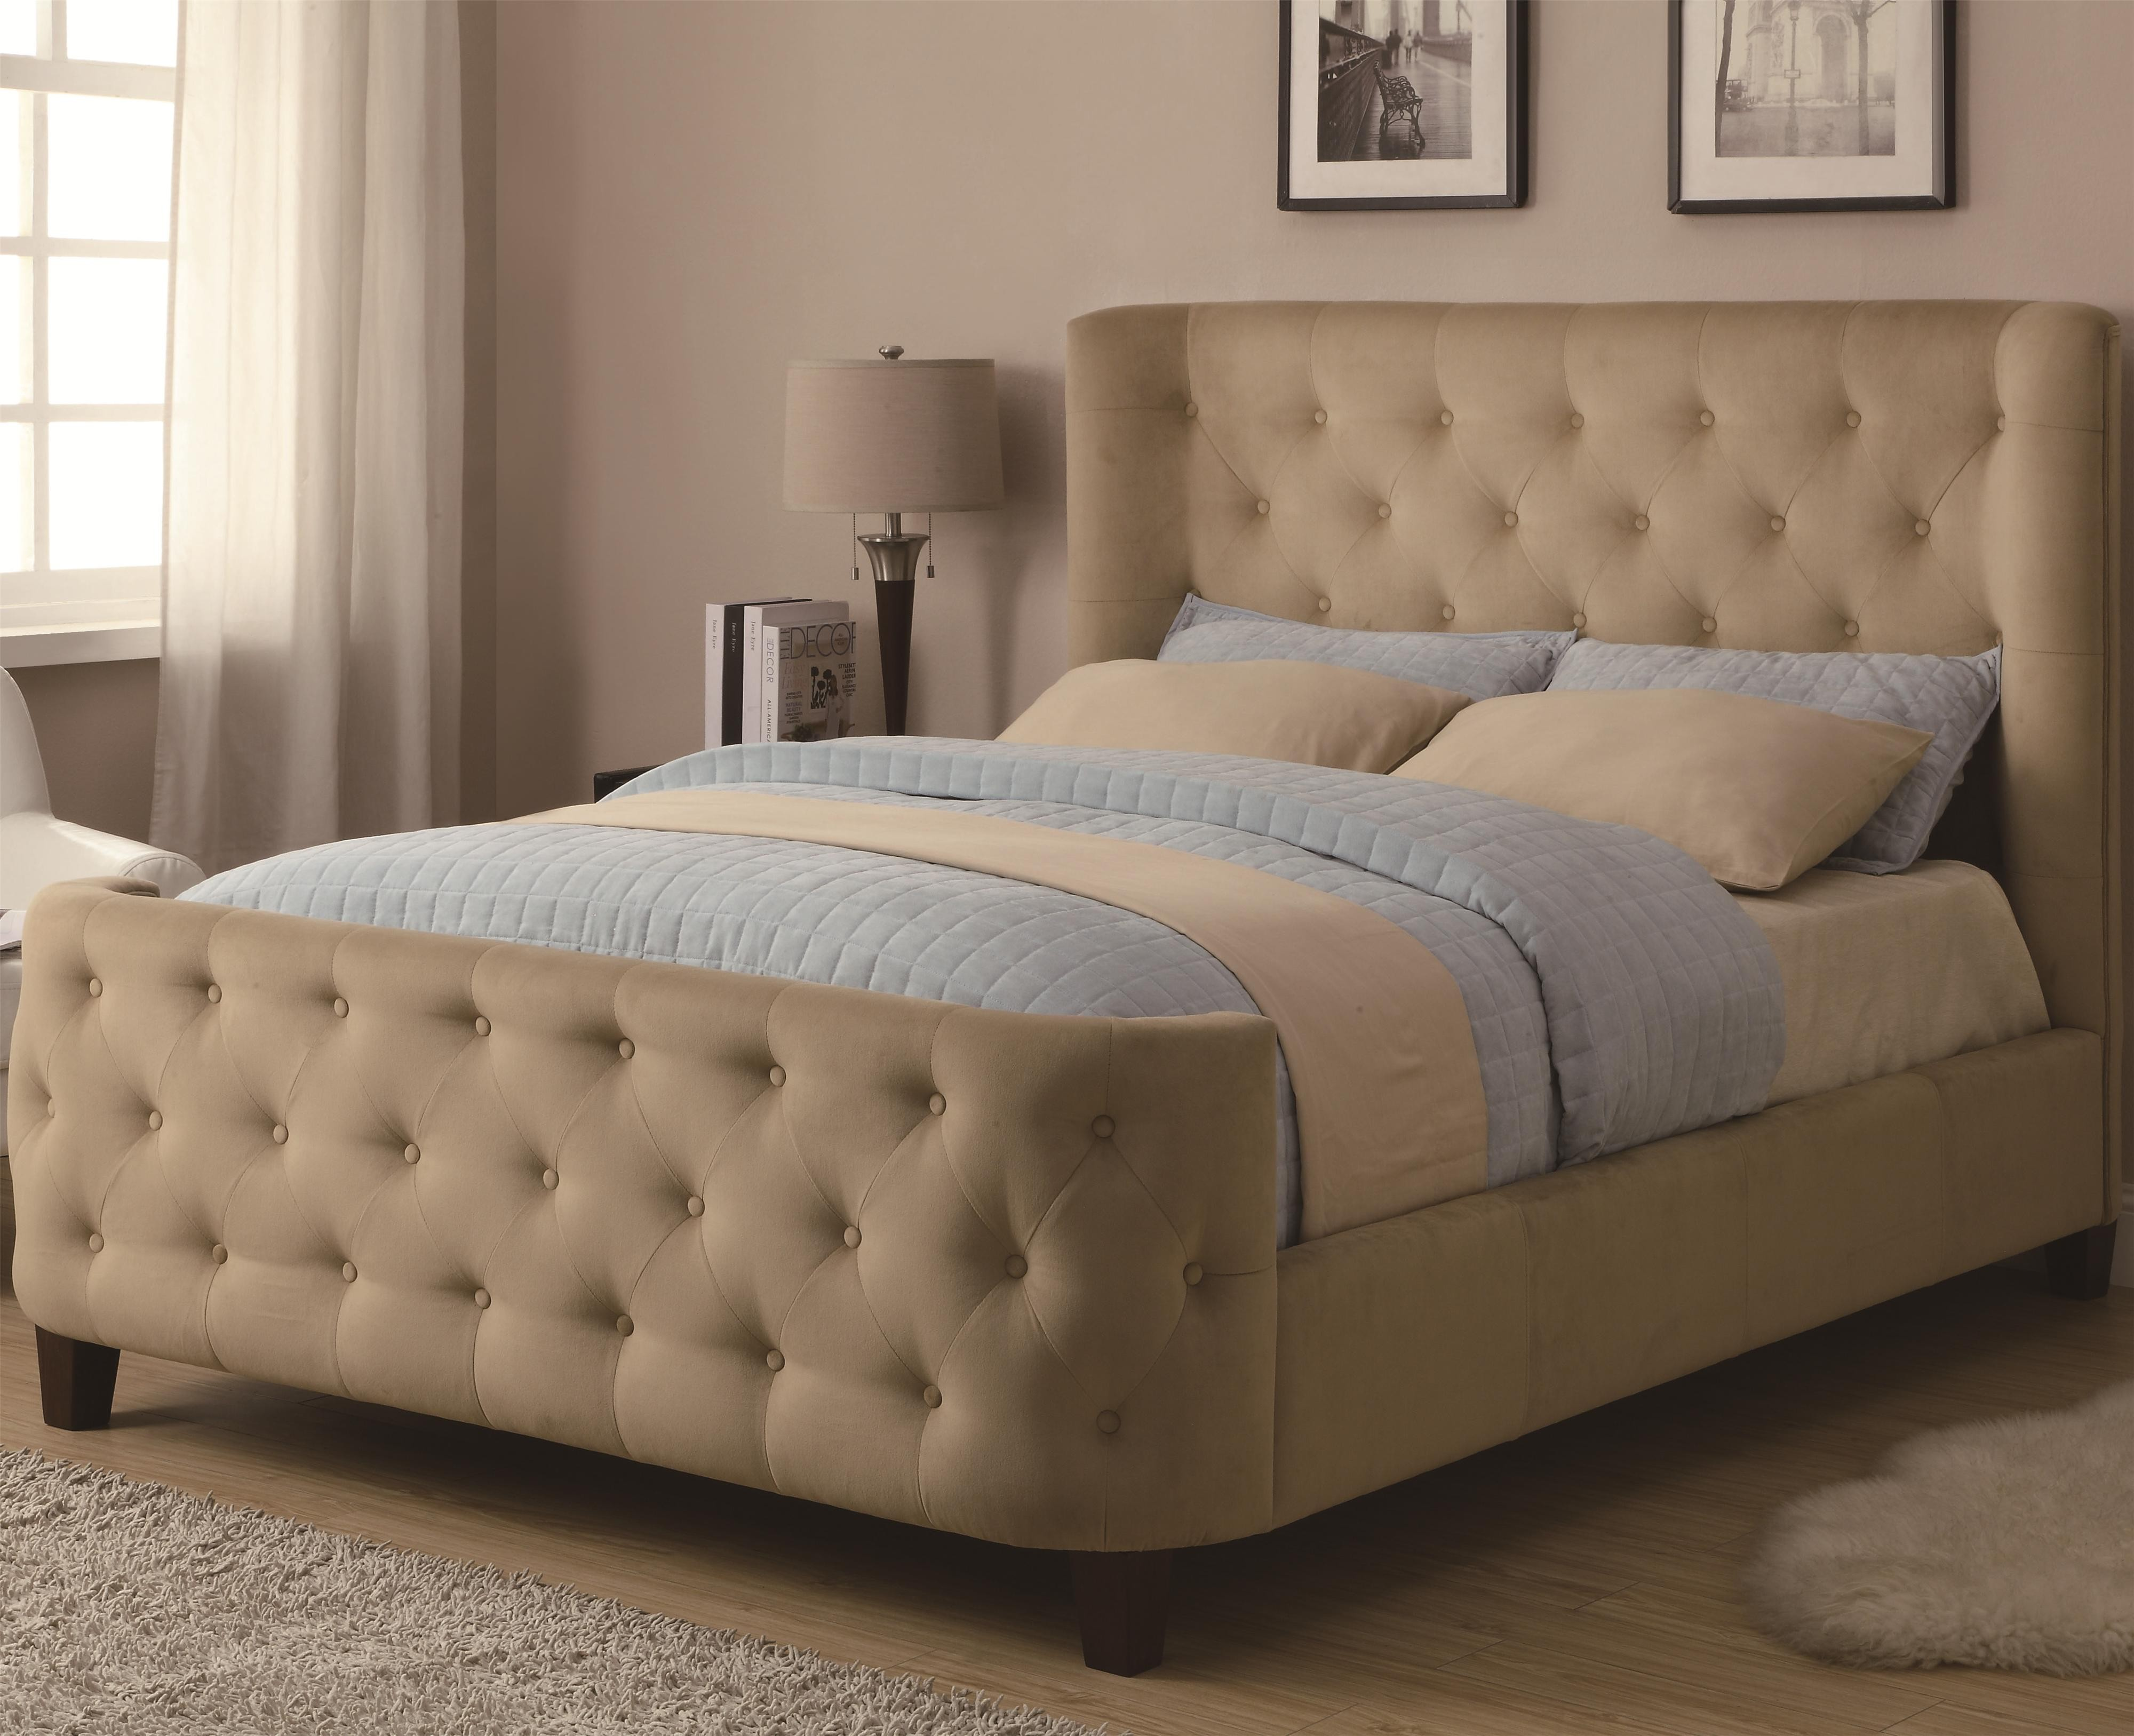 Modern king size bed frame and headboard idea with pastel color